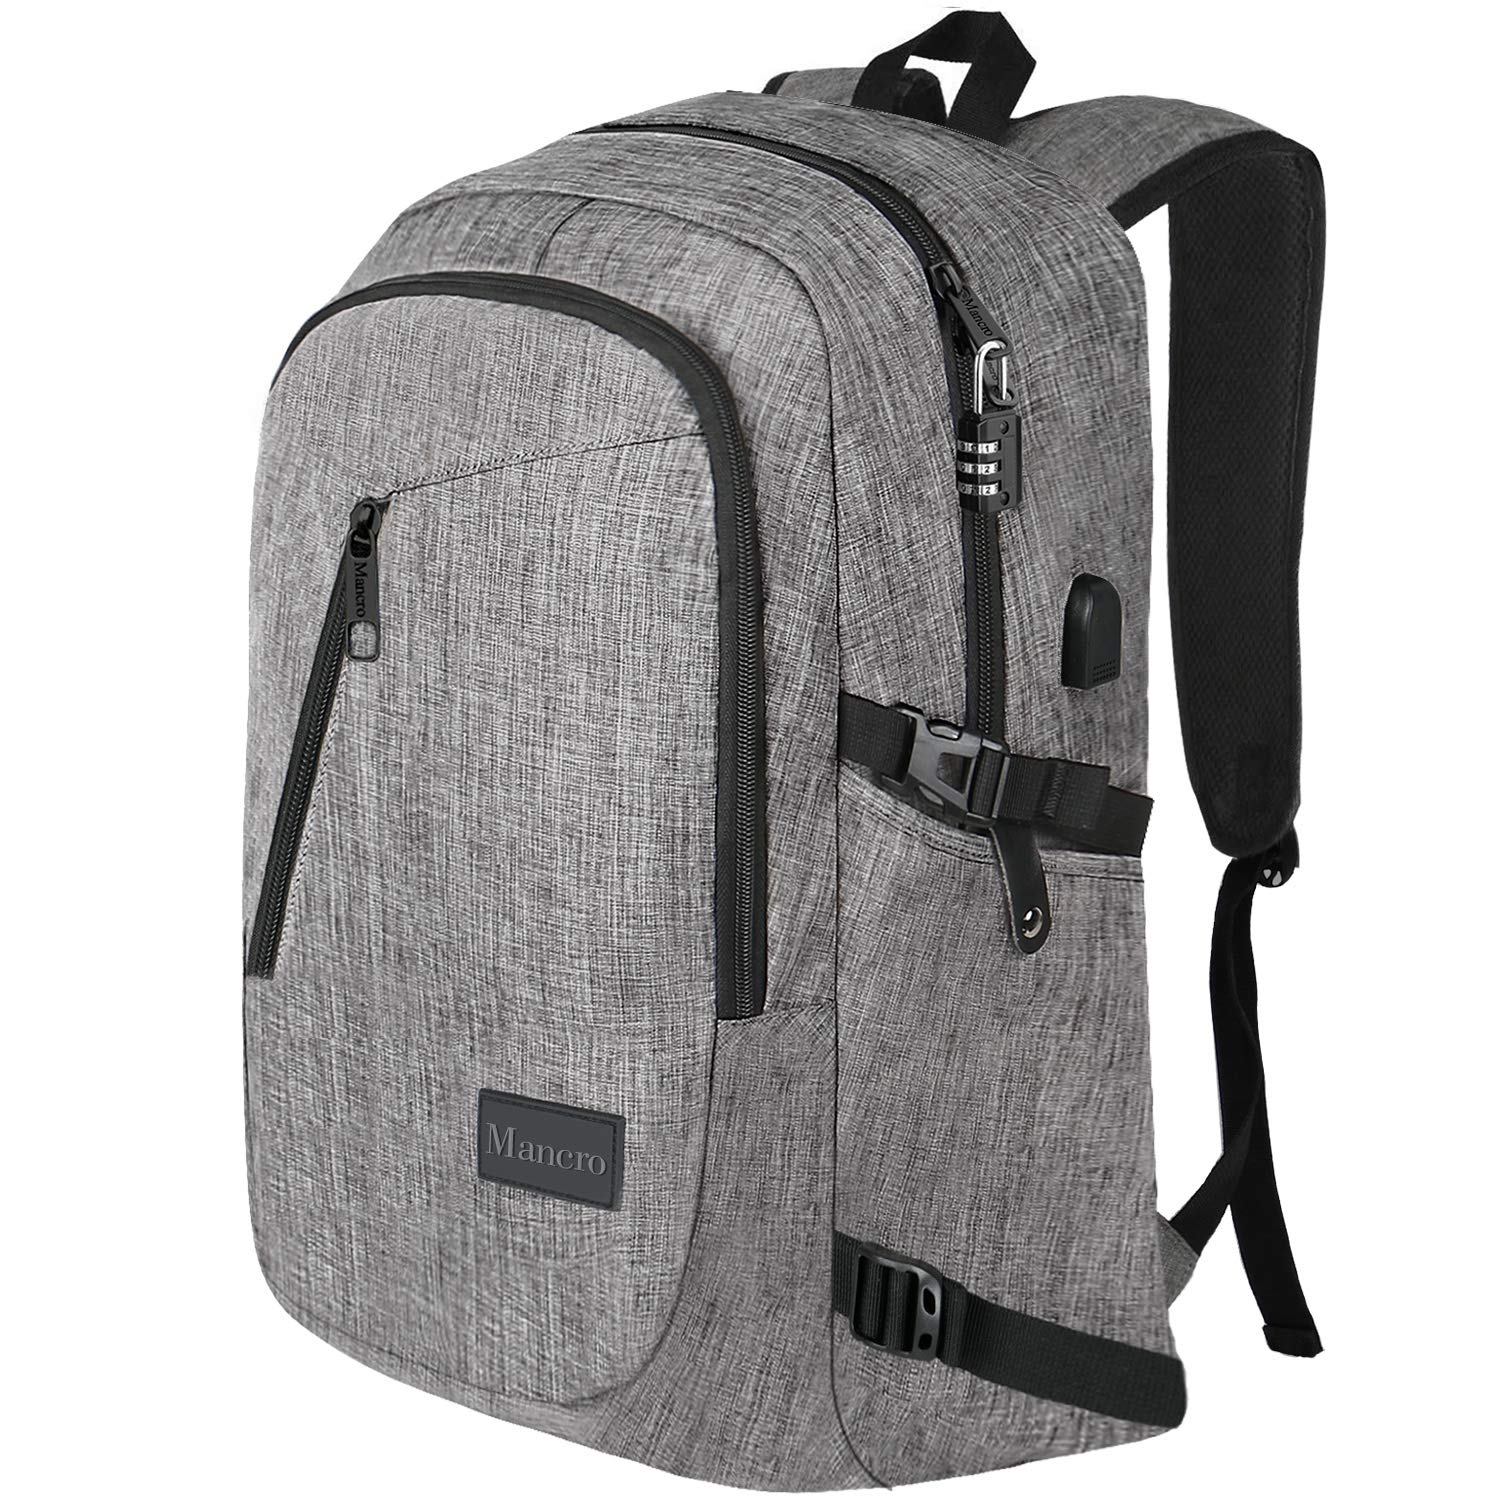 17.3 Inch Laptop Backpack, Large Travel Laptop Backpack with USB Charging Port, Anti Theft Water Resistant Business Backpack for Men and Women, Mancro Durable Lightweight School College Bag, Grey by Mancro